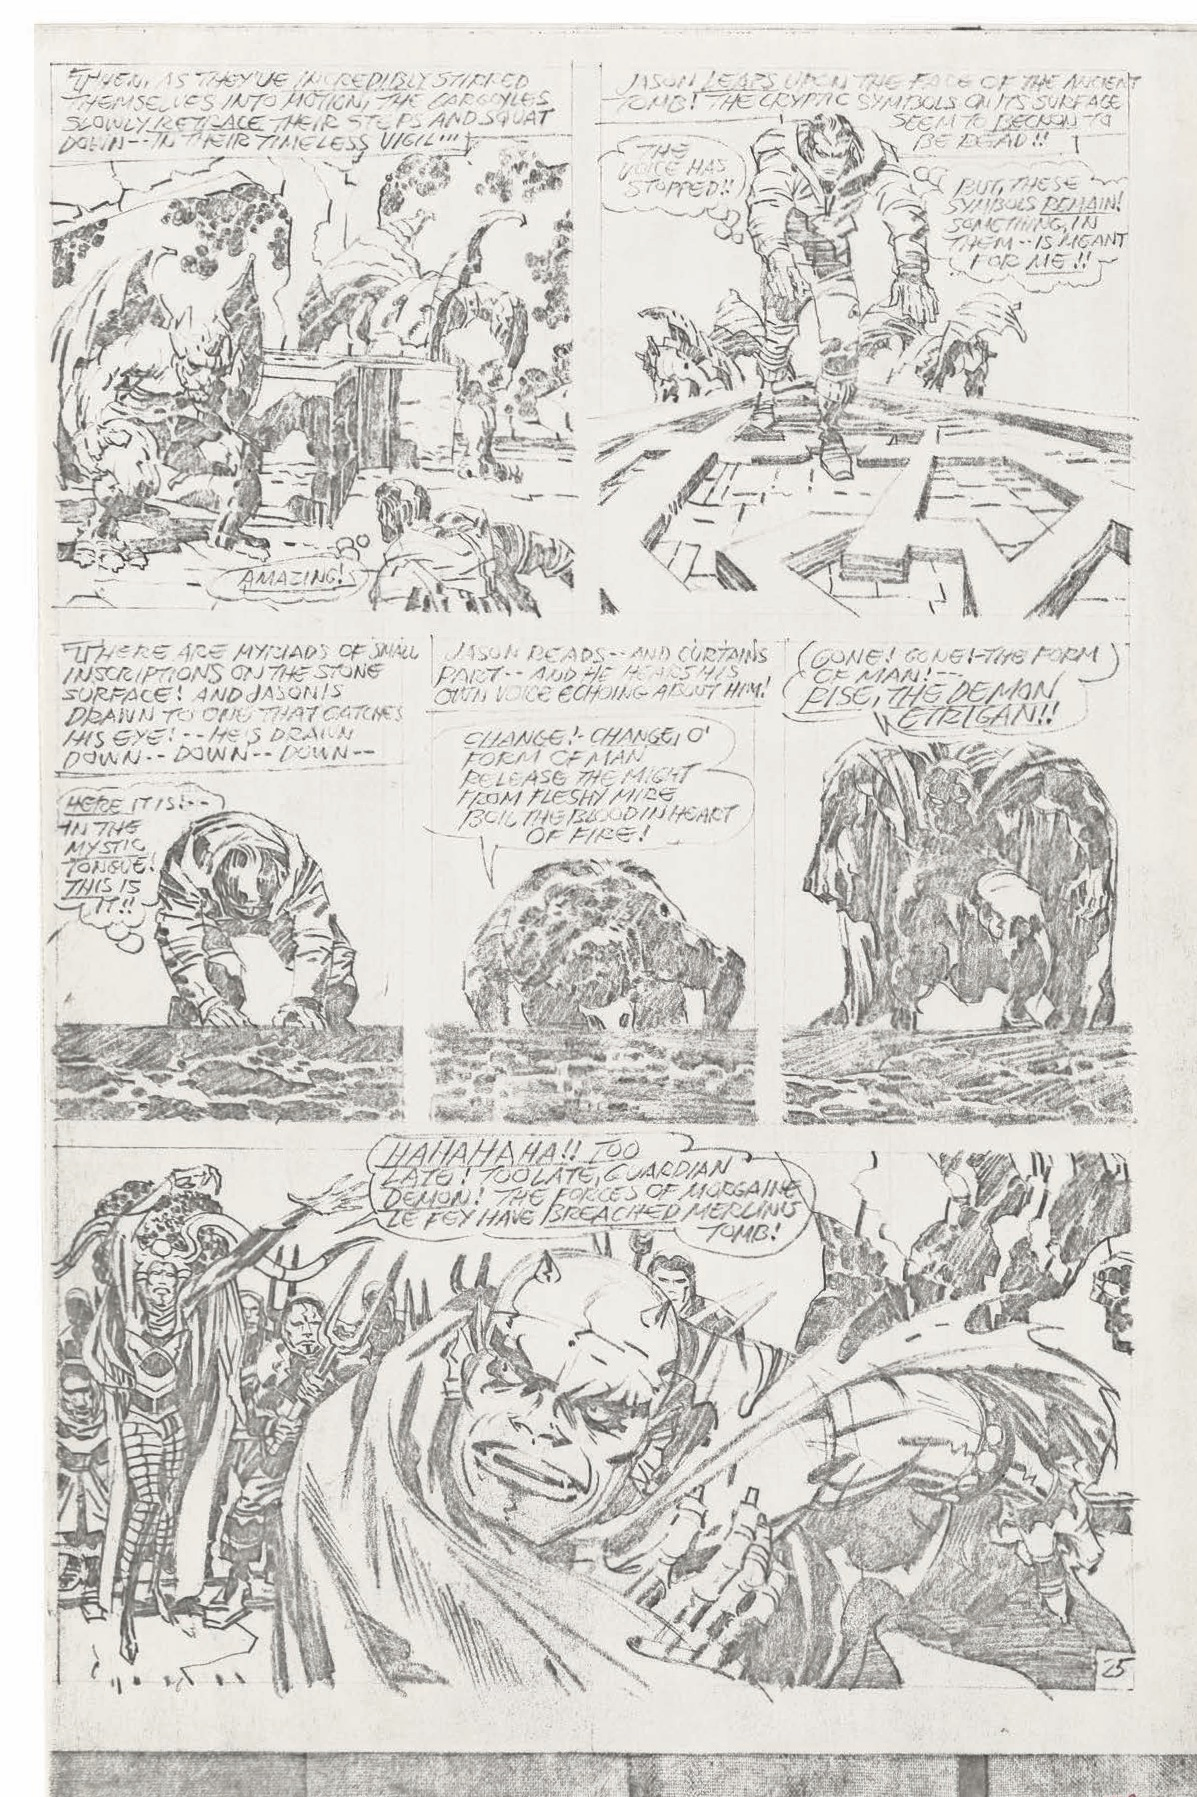 jackkirby_pencils_inks-lodemon3